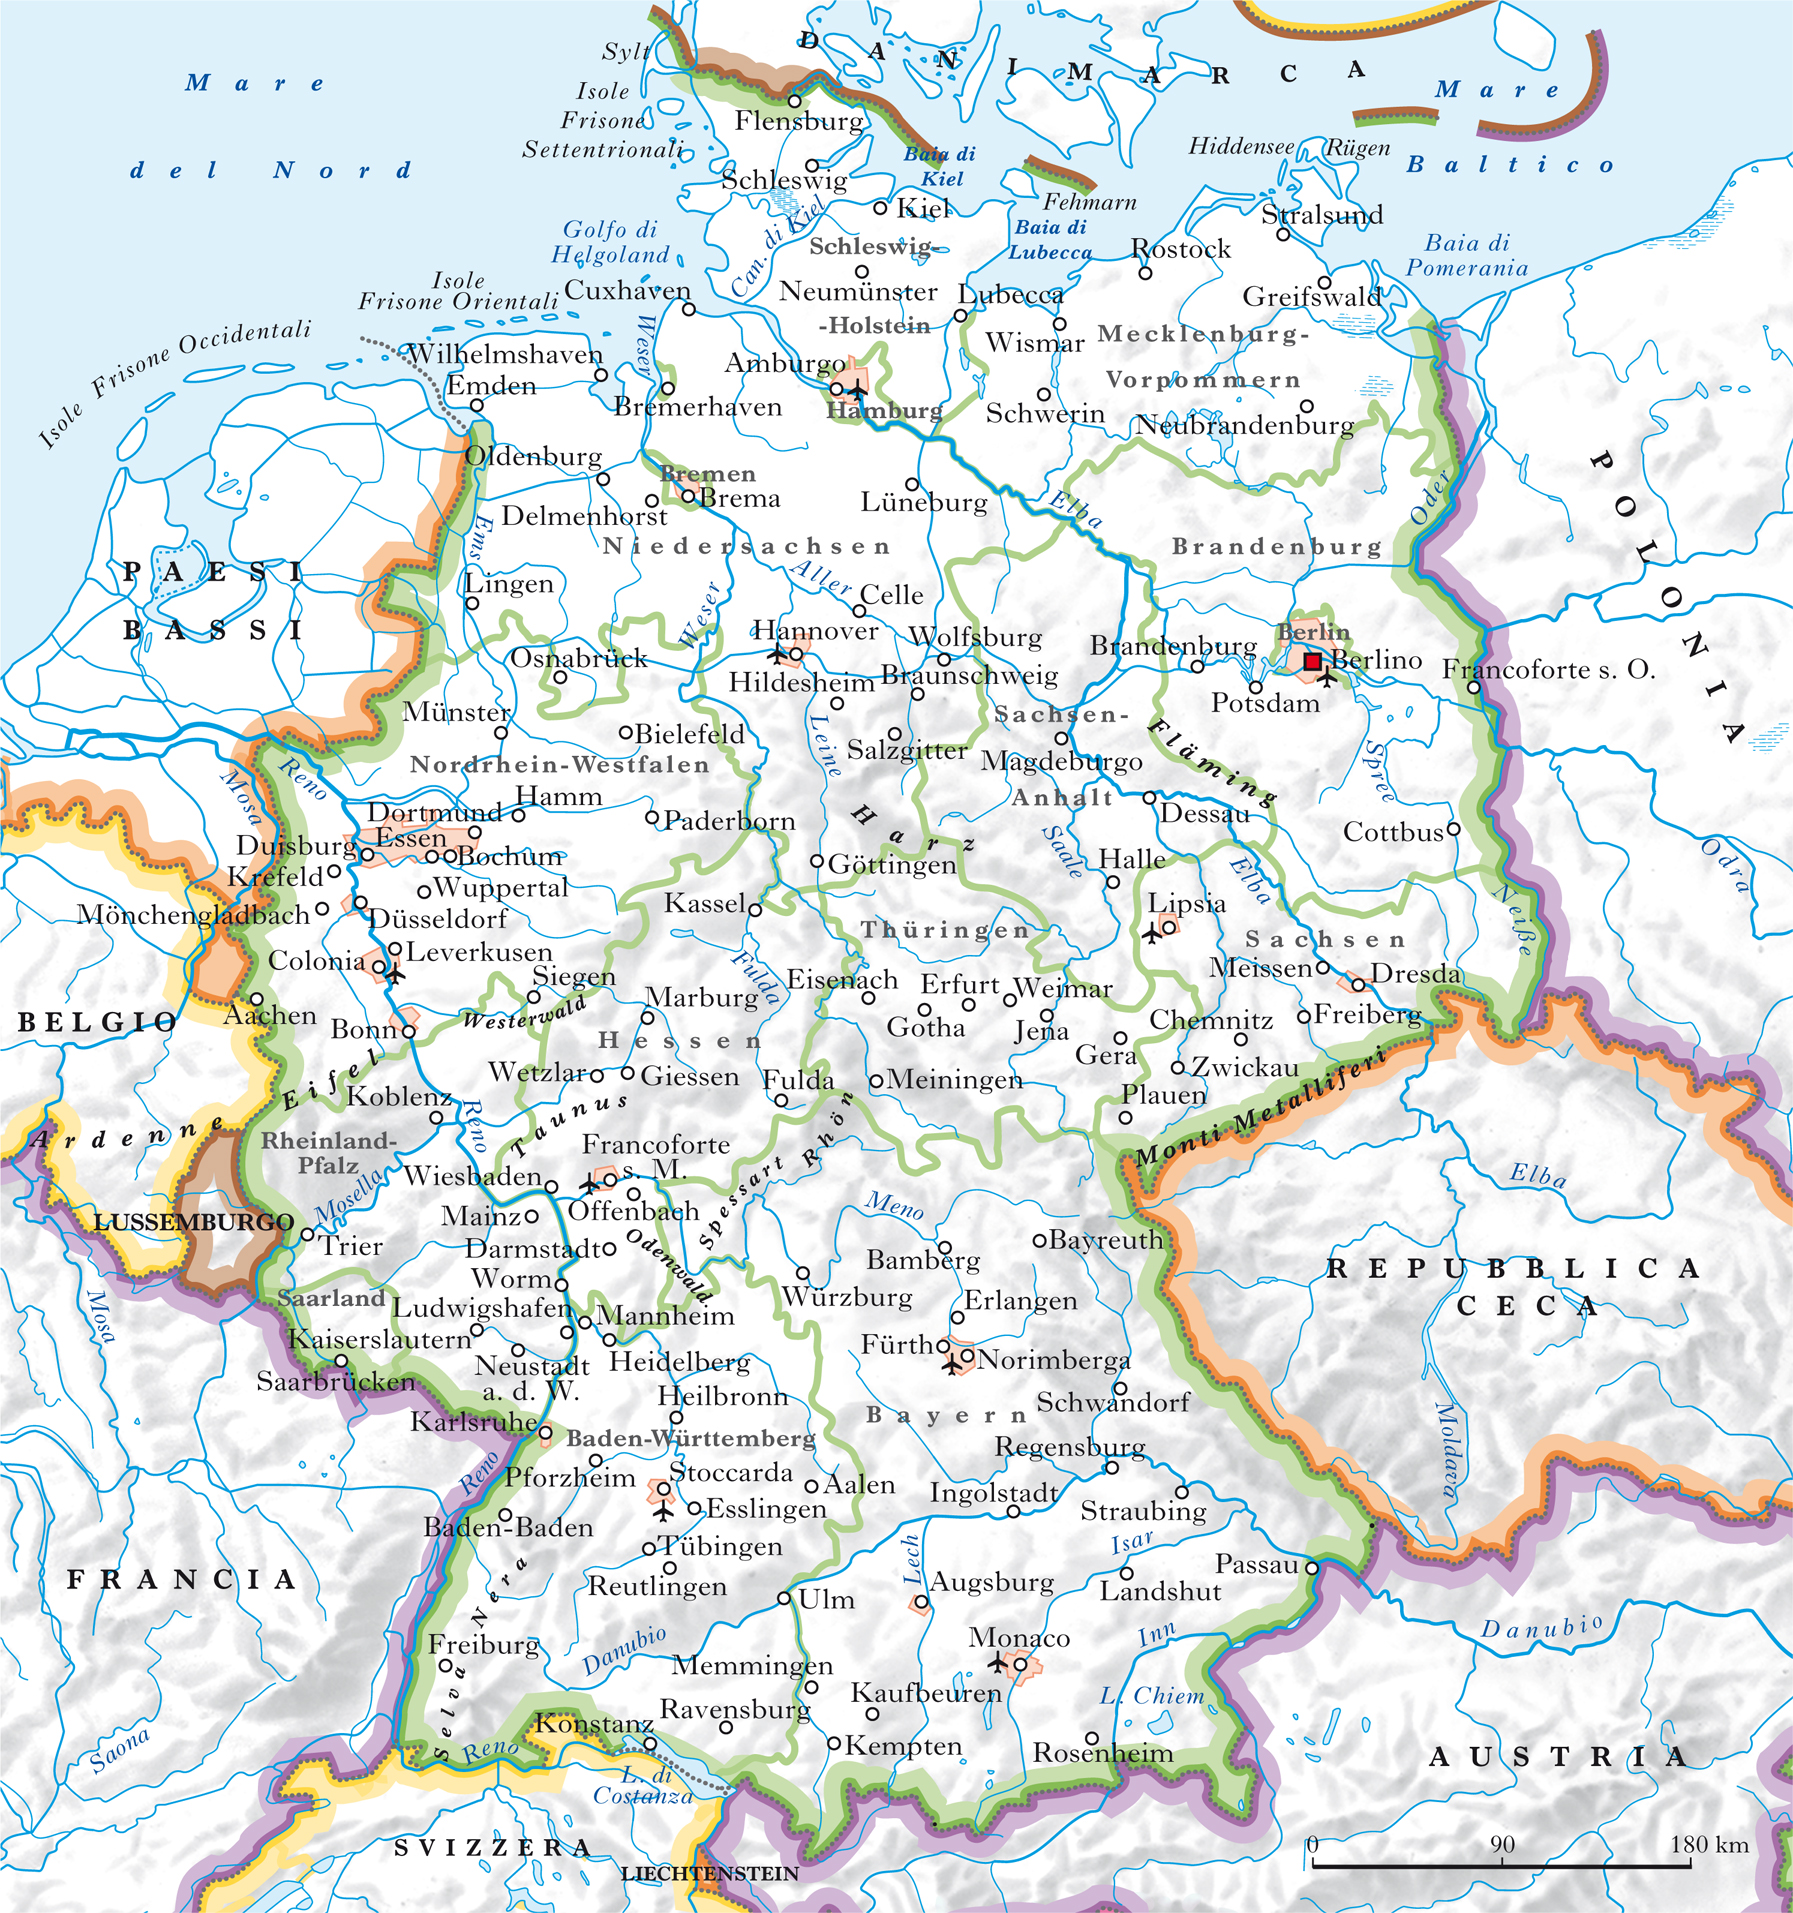 Germania Del Sud Cartina.Germania Nell Enciclopedia Treccani